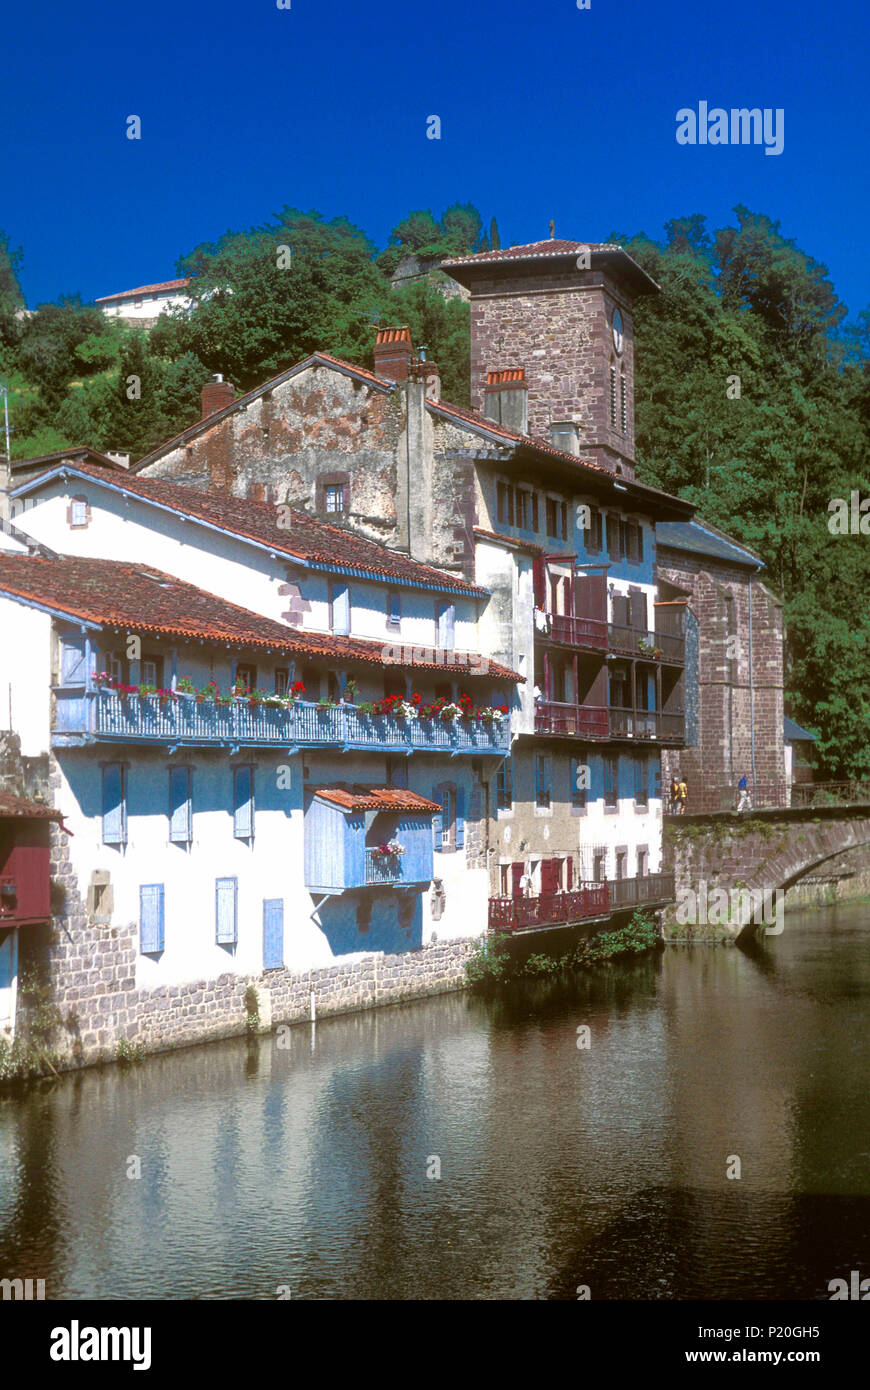 France, Basque Country, houses on the edge of the Nive river in Saint Jean Pied de Port (labelled 'Most Beautiful Village in France') - Stock Image